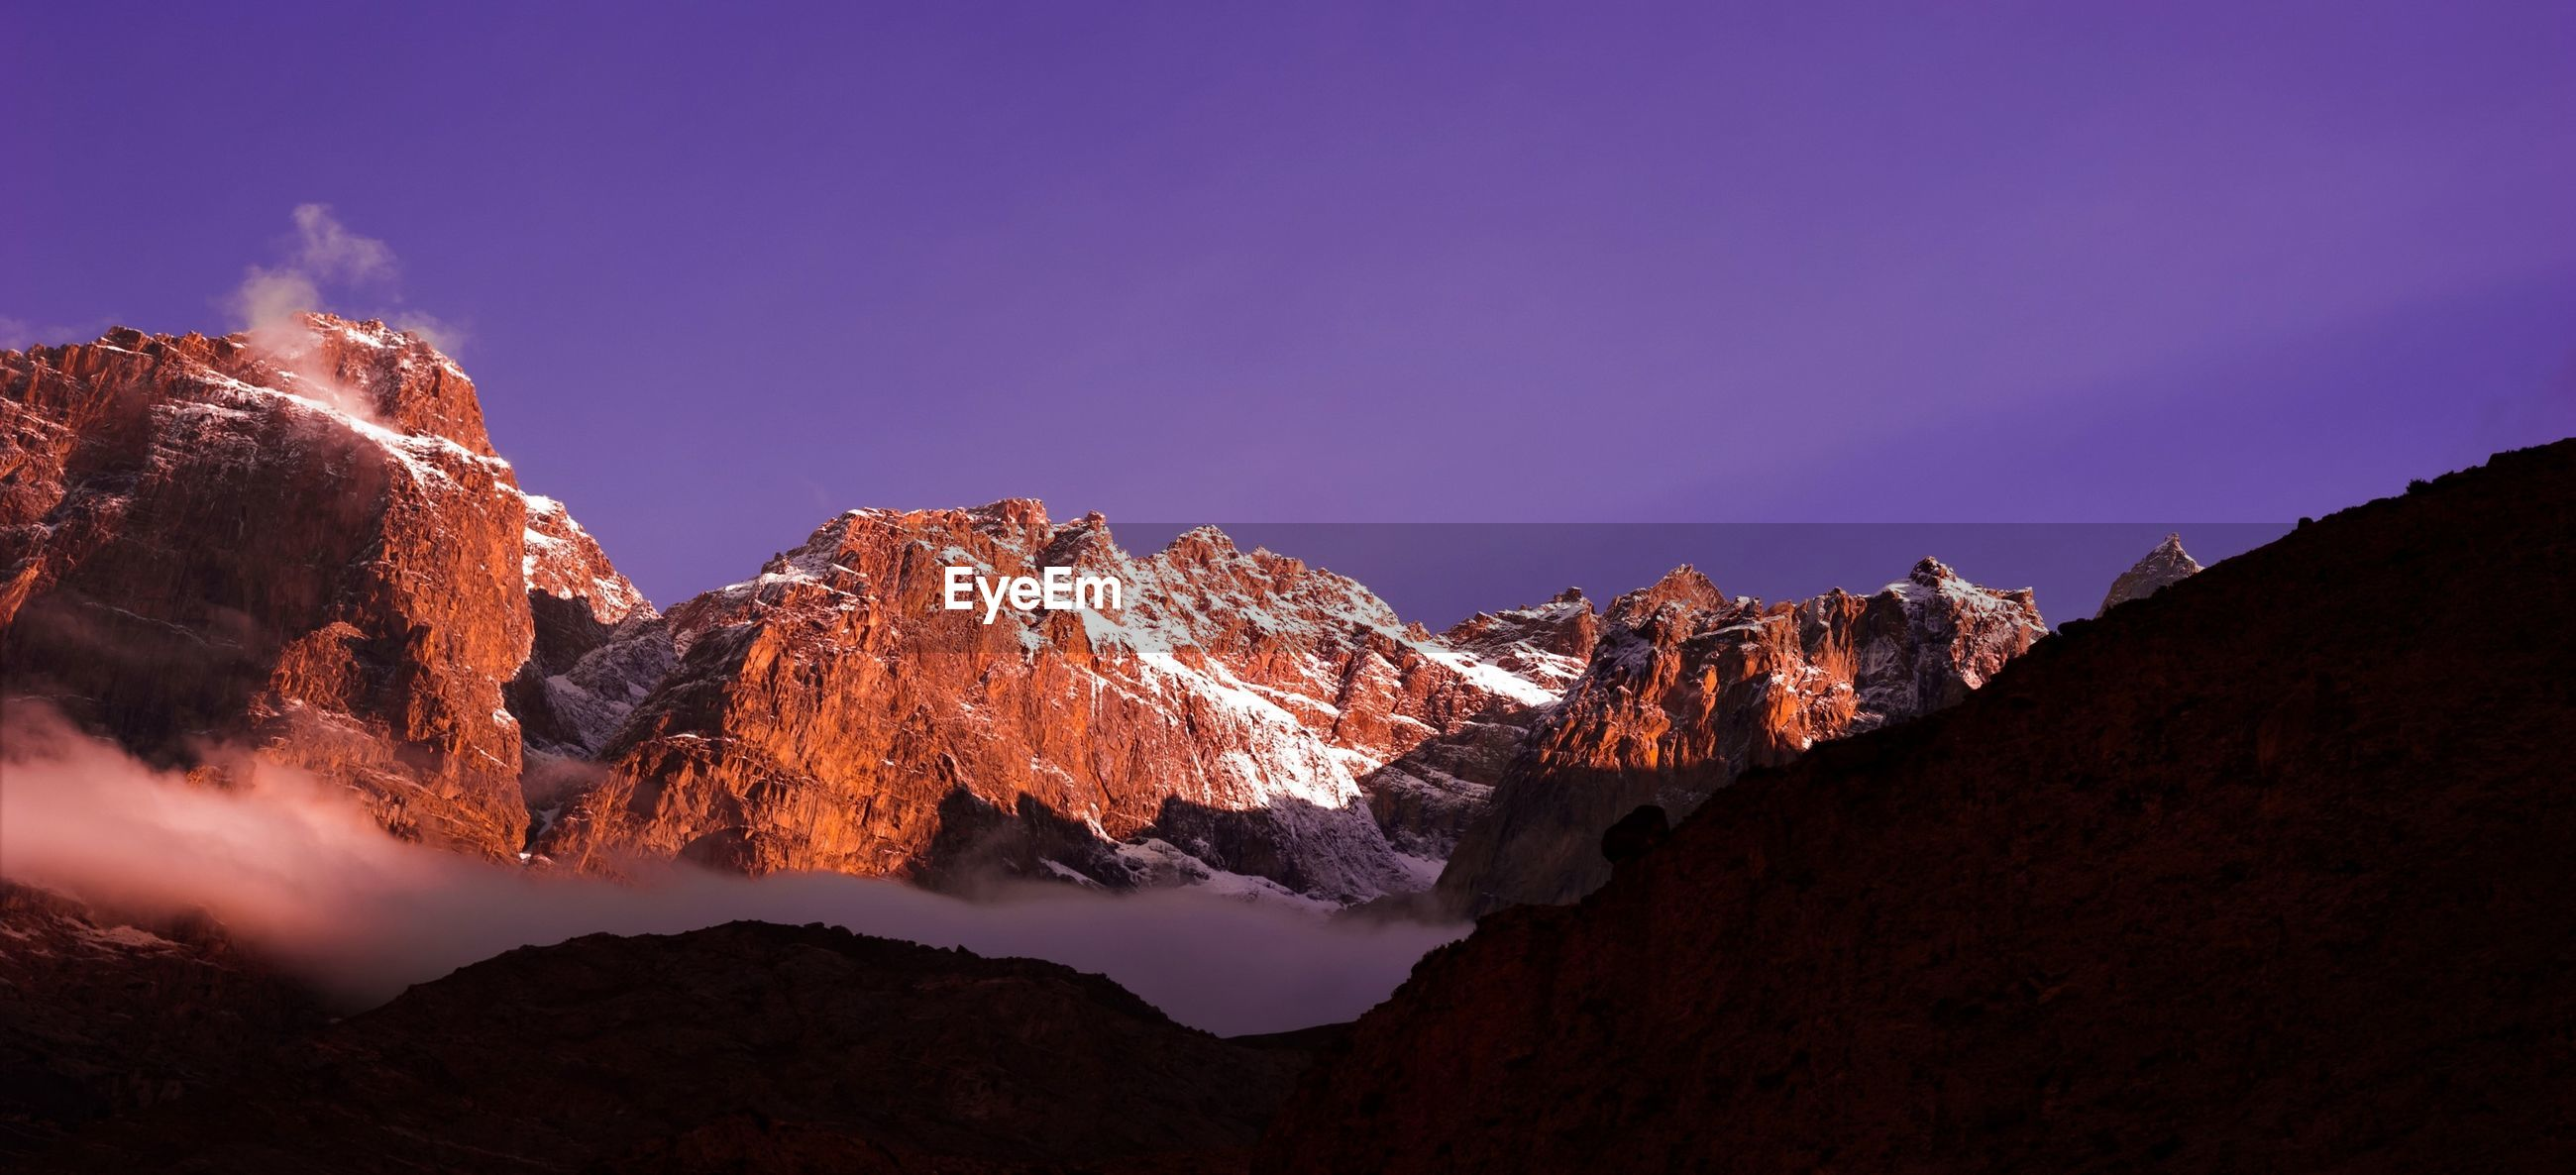 PANORAMIC SHOT OF MOUNTAINS AGAINST BLUE SKY